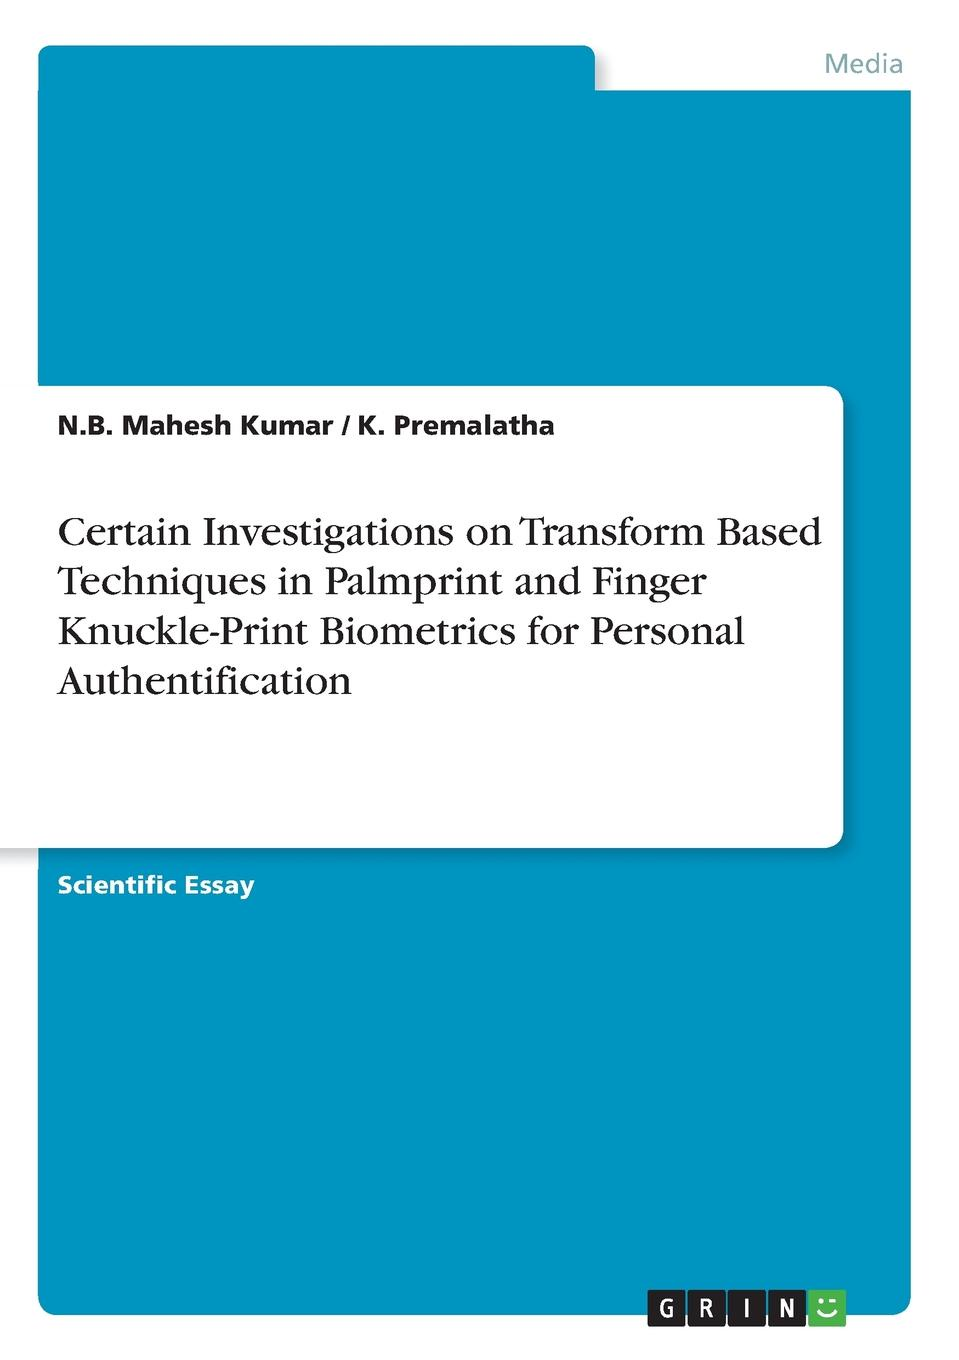 N.B. Mahesh Kumar, K. Premalatha Certain Investigations on Transform Based Techniques in Palmprint and Finger Knuckle-Print Biometrics for Personal Authentification realand tcp ip biometric fingerprint and rfid card time attendance for 2000 users with free different language software and sdk